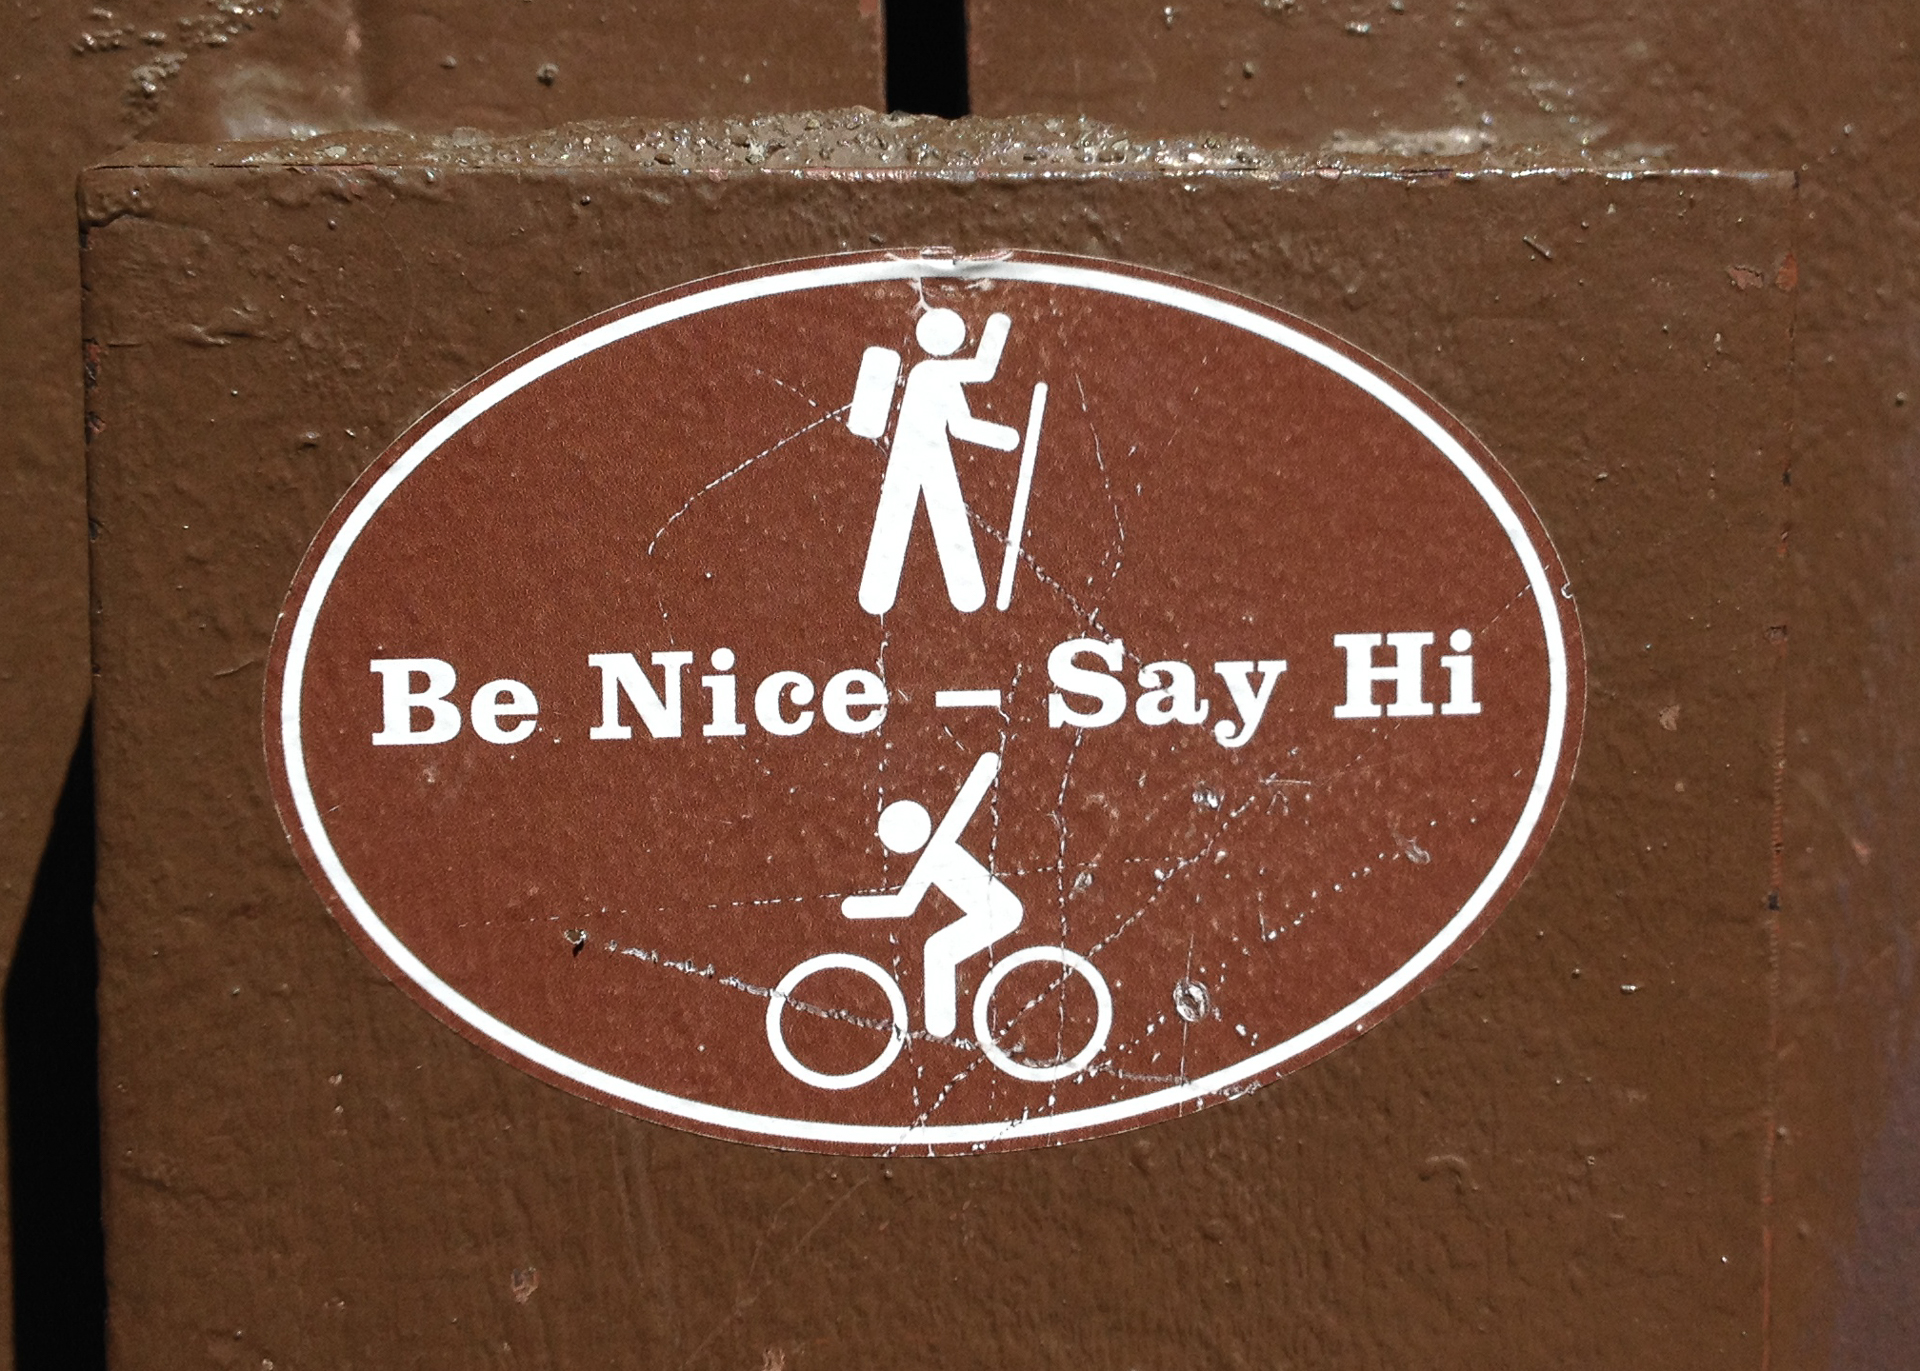 I like the signs they had on the trails.